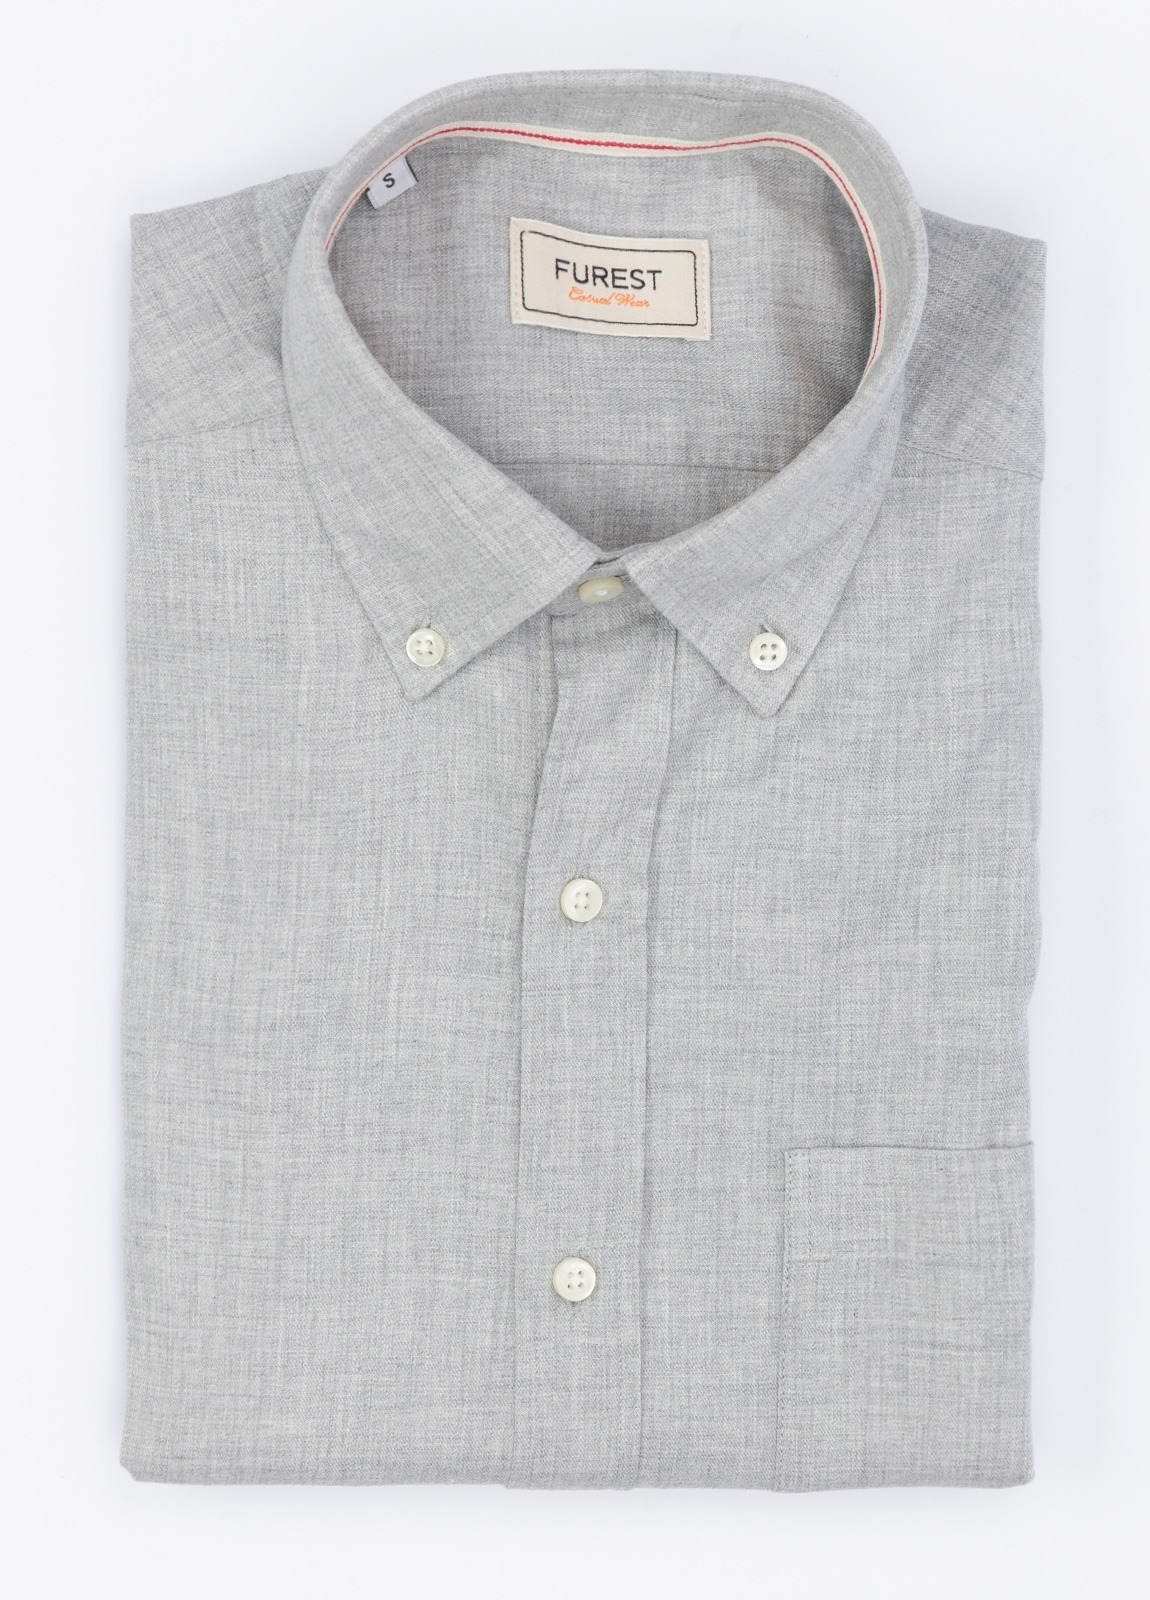 Camisa Leisure Wear SLIM B.D,color gris. 100% Algodón.